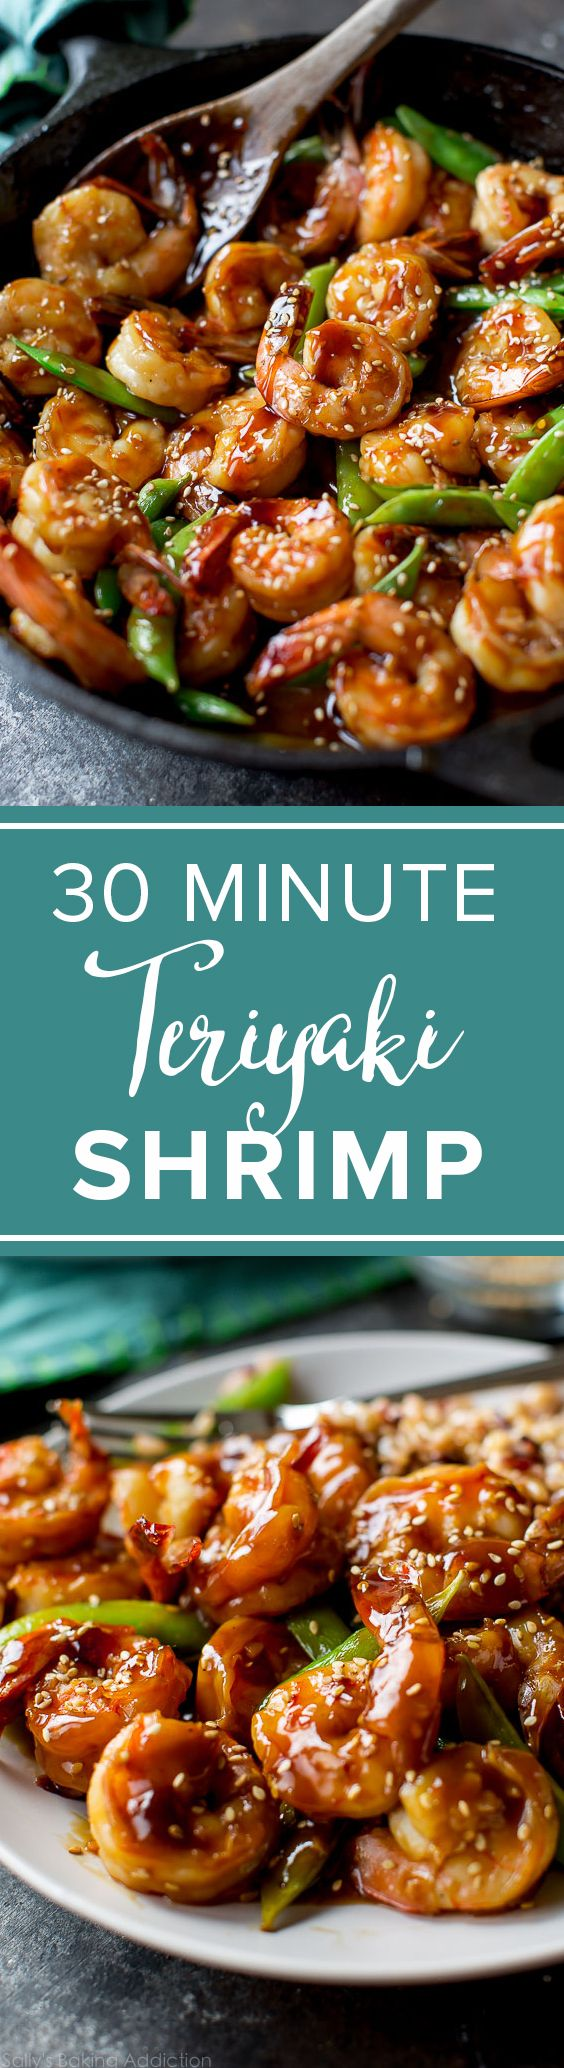 Teriyaki shrimp in only 30 minutes! Quick easy weeknight dinner recipes! Recipe on Sally's Baking Addiction http://sallysbakingaddiction.com/2016/08/15/30-minute-teriyaki-shrimp/